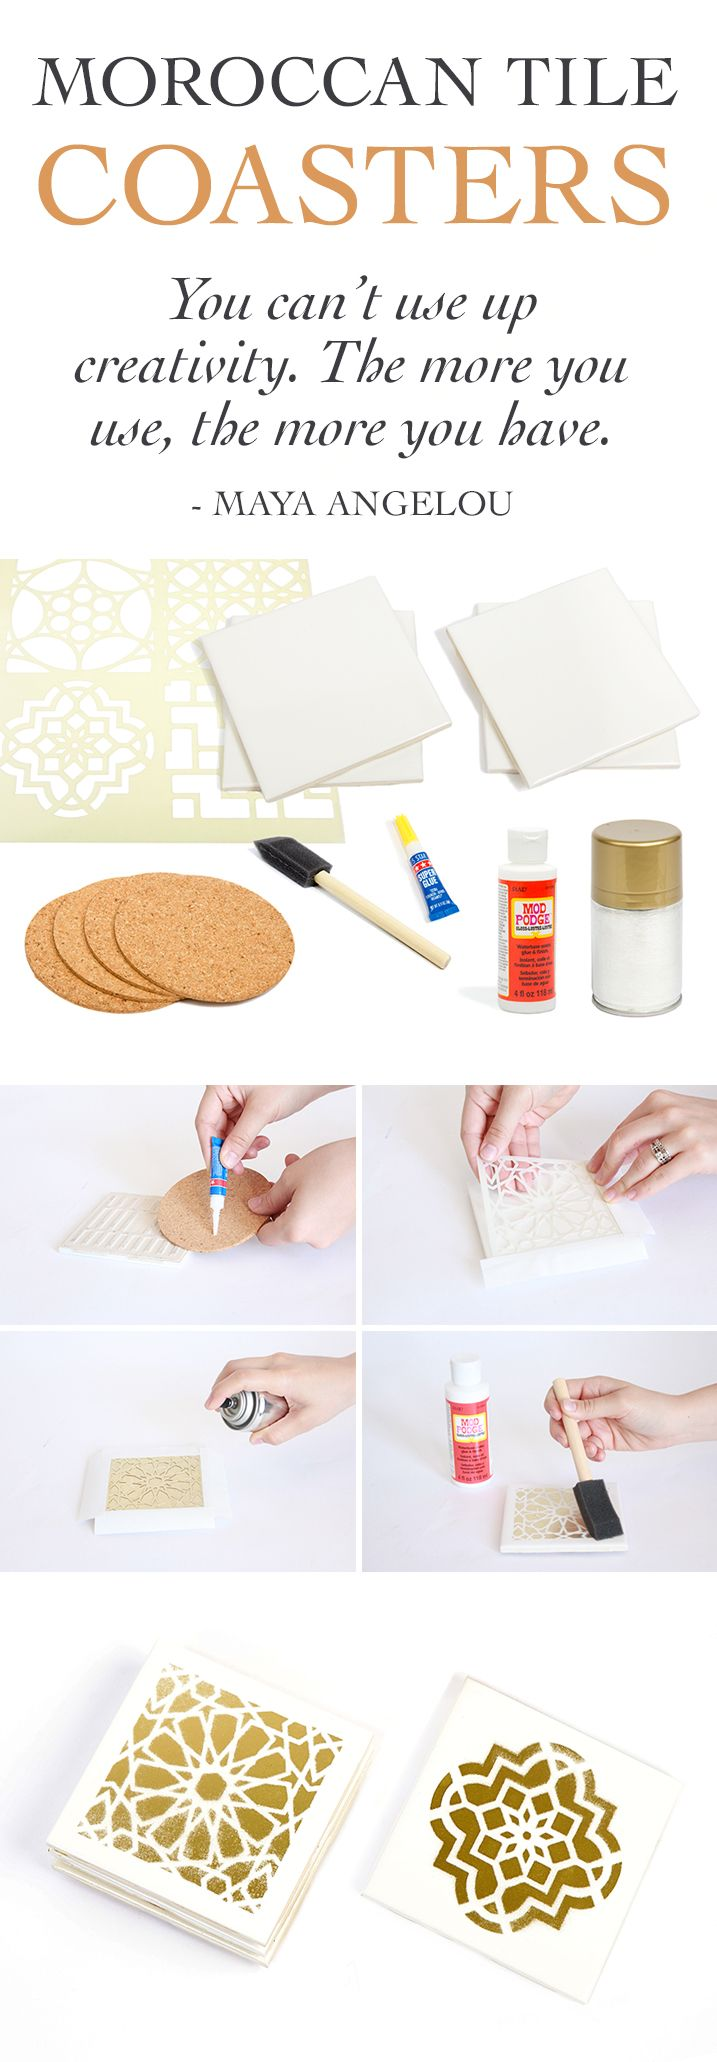 Make Moroccan tile coasters using a DIY Decor Kit by Darbysmart.com